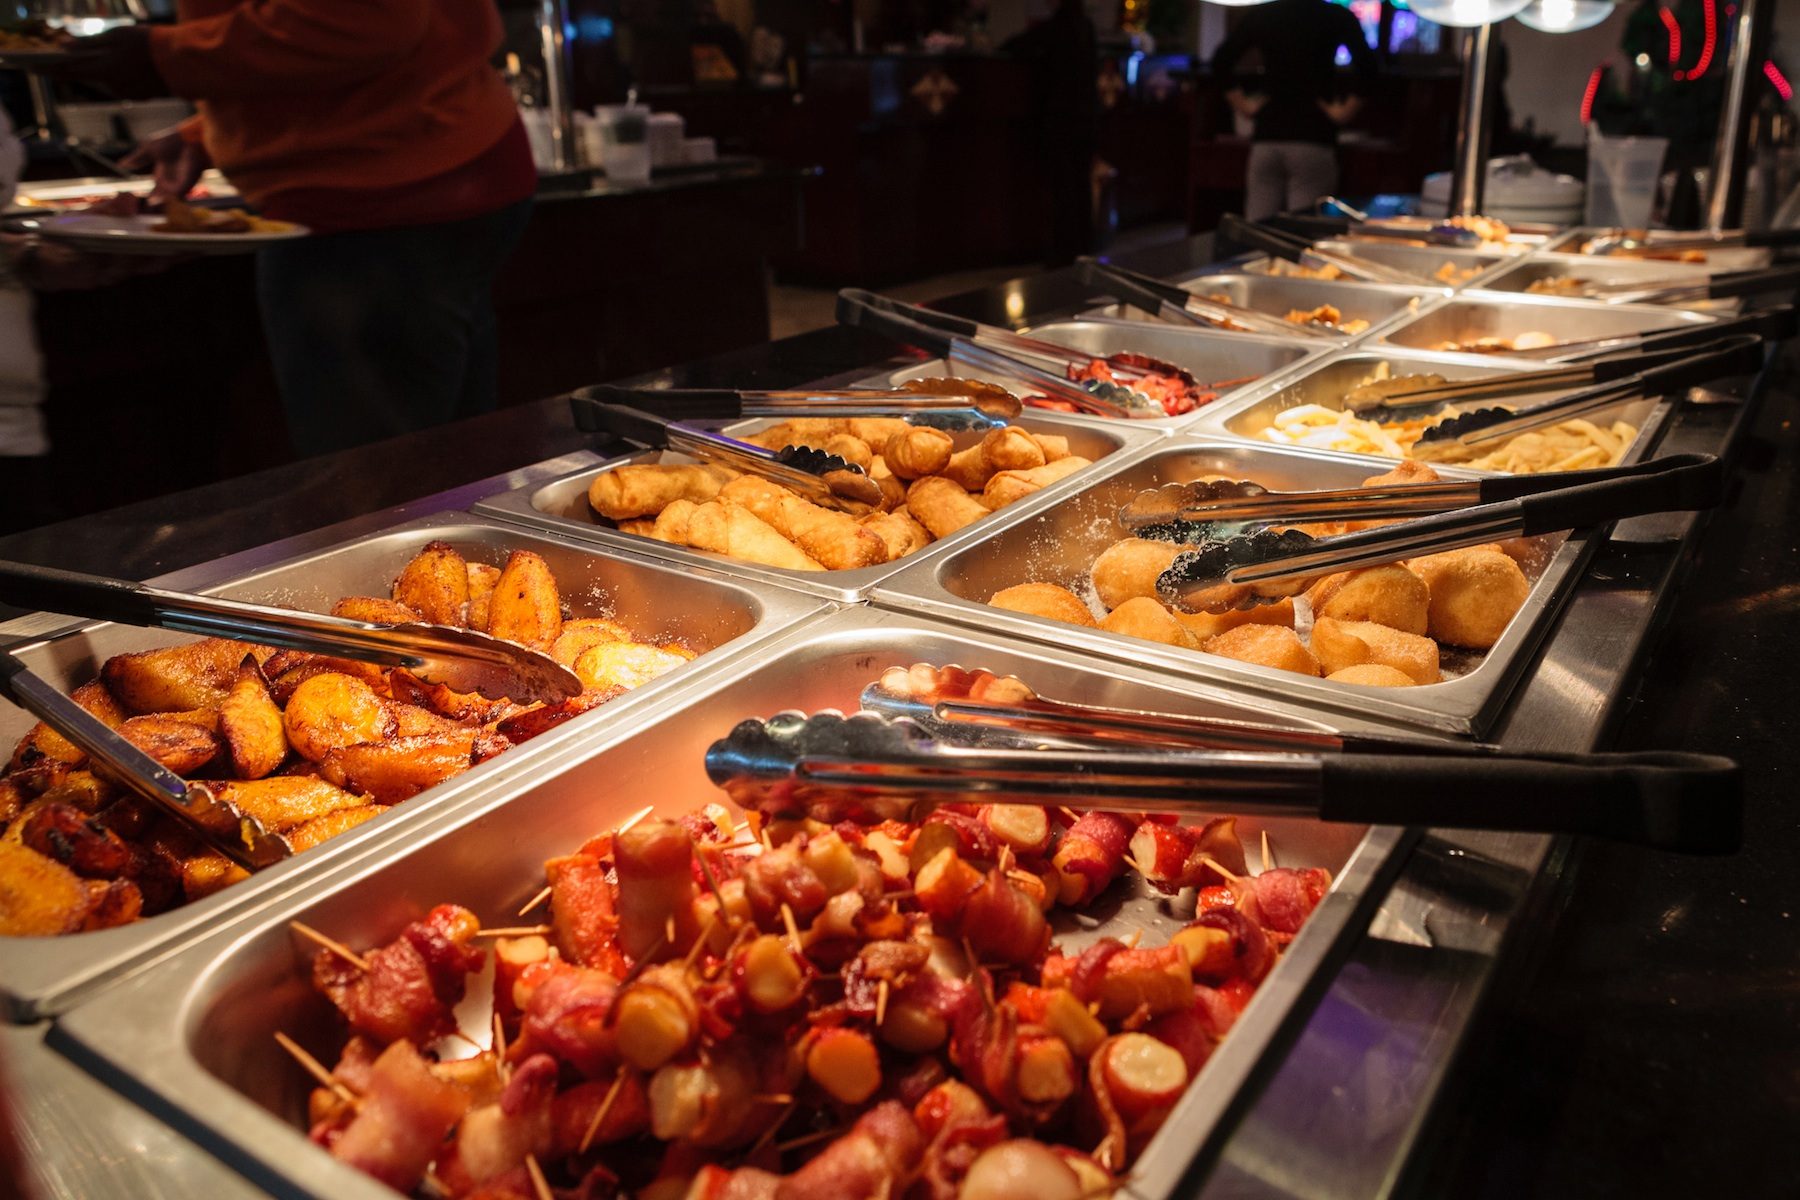 All You Can Eat Restaurants in Illinois, IL. About Search Results. W Devon Ave Chicago, IL () Buffet Restaurants Pizza Restaurants. Website Coupons Directions Menu More Info. Order Online. Coupons & Deals Up to 23% Off Villa Palermo Pizza.